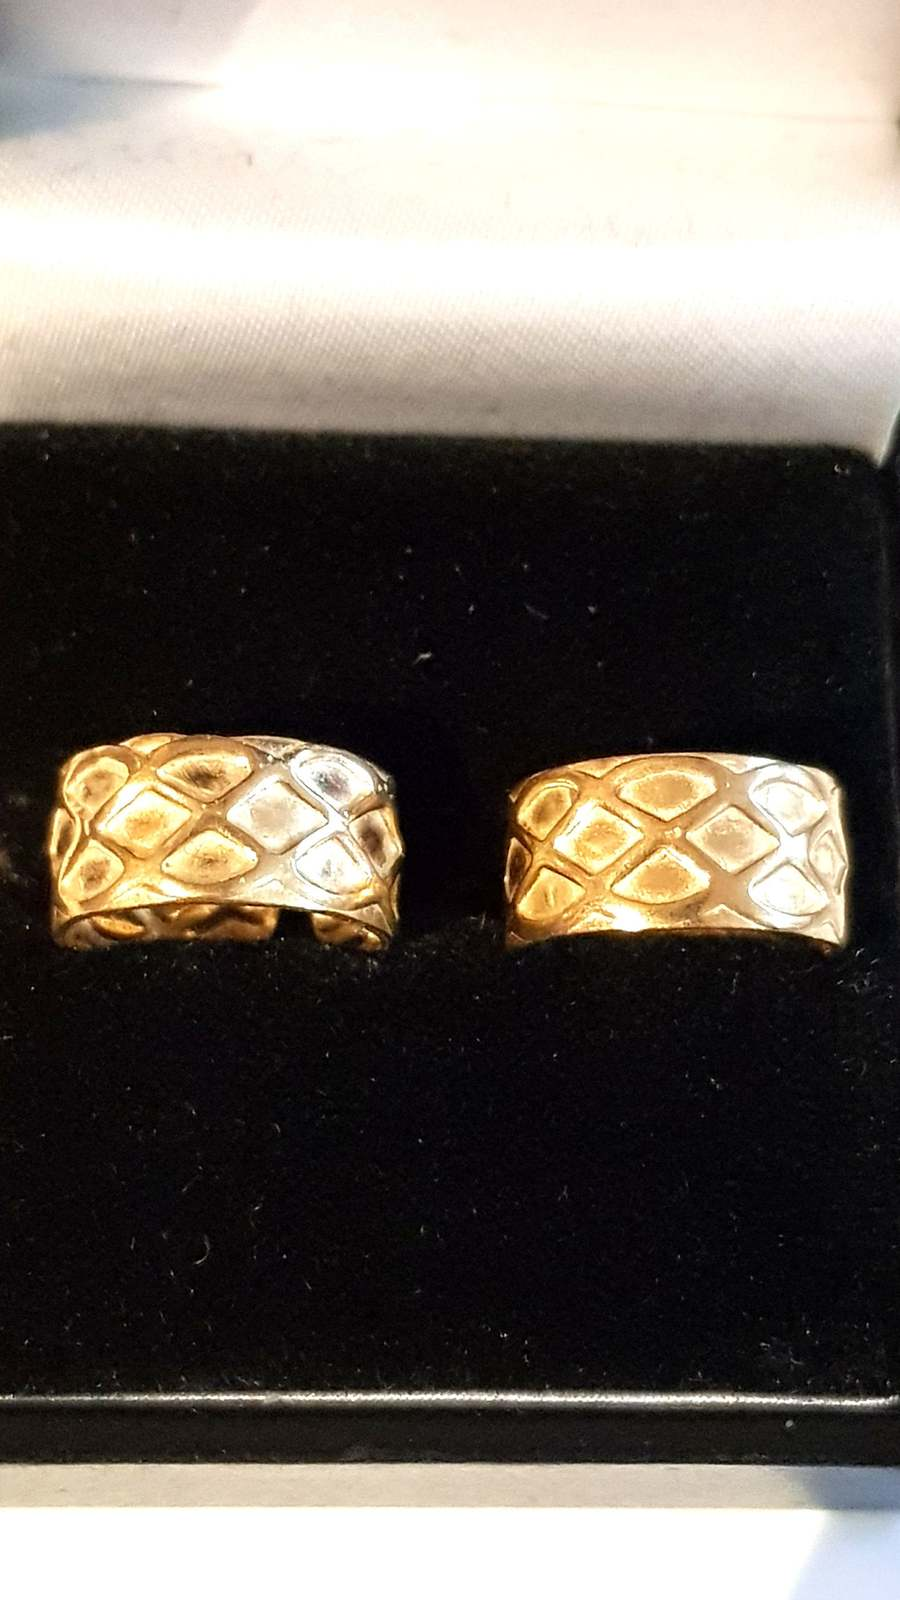 pair solid bronze  ear cuffs , diamond pattern ear clips can be worn anywhere